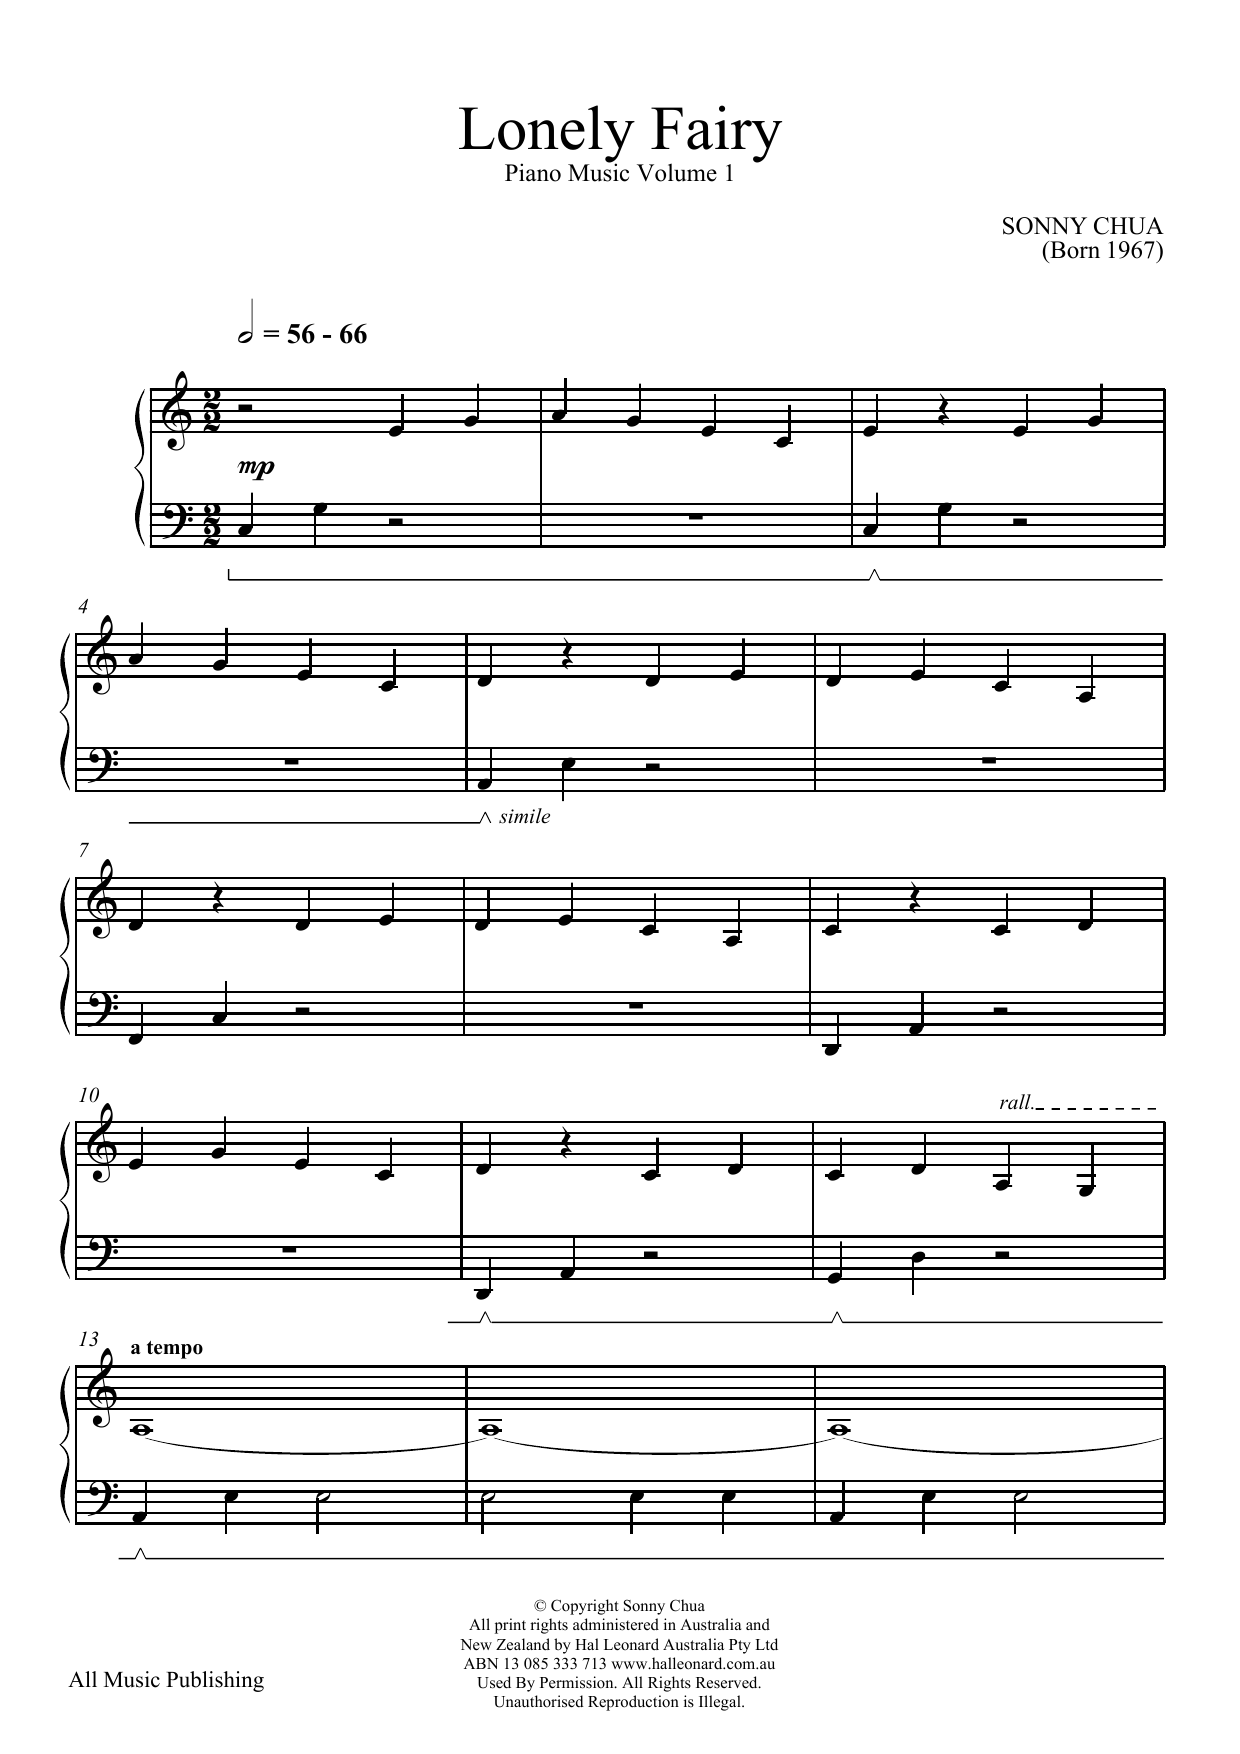 Lonely Fairy (From Piano Music Vol 1) Sheet Music